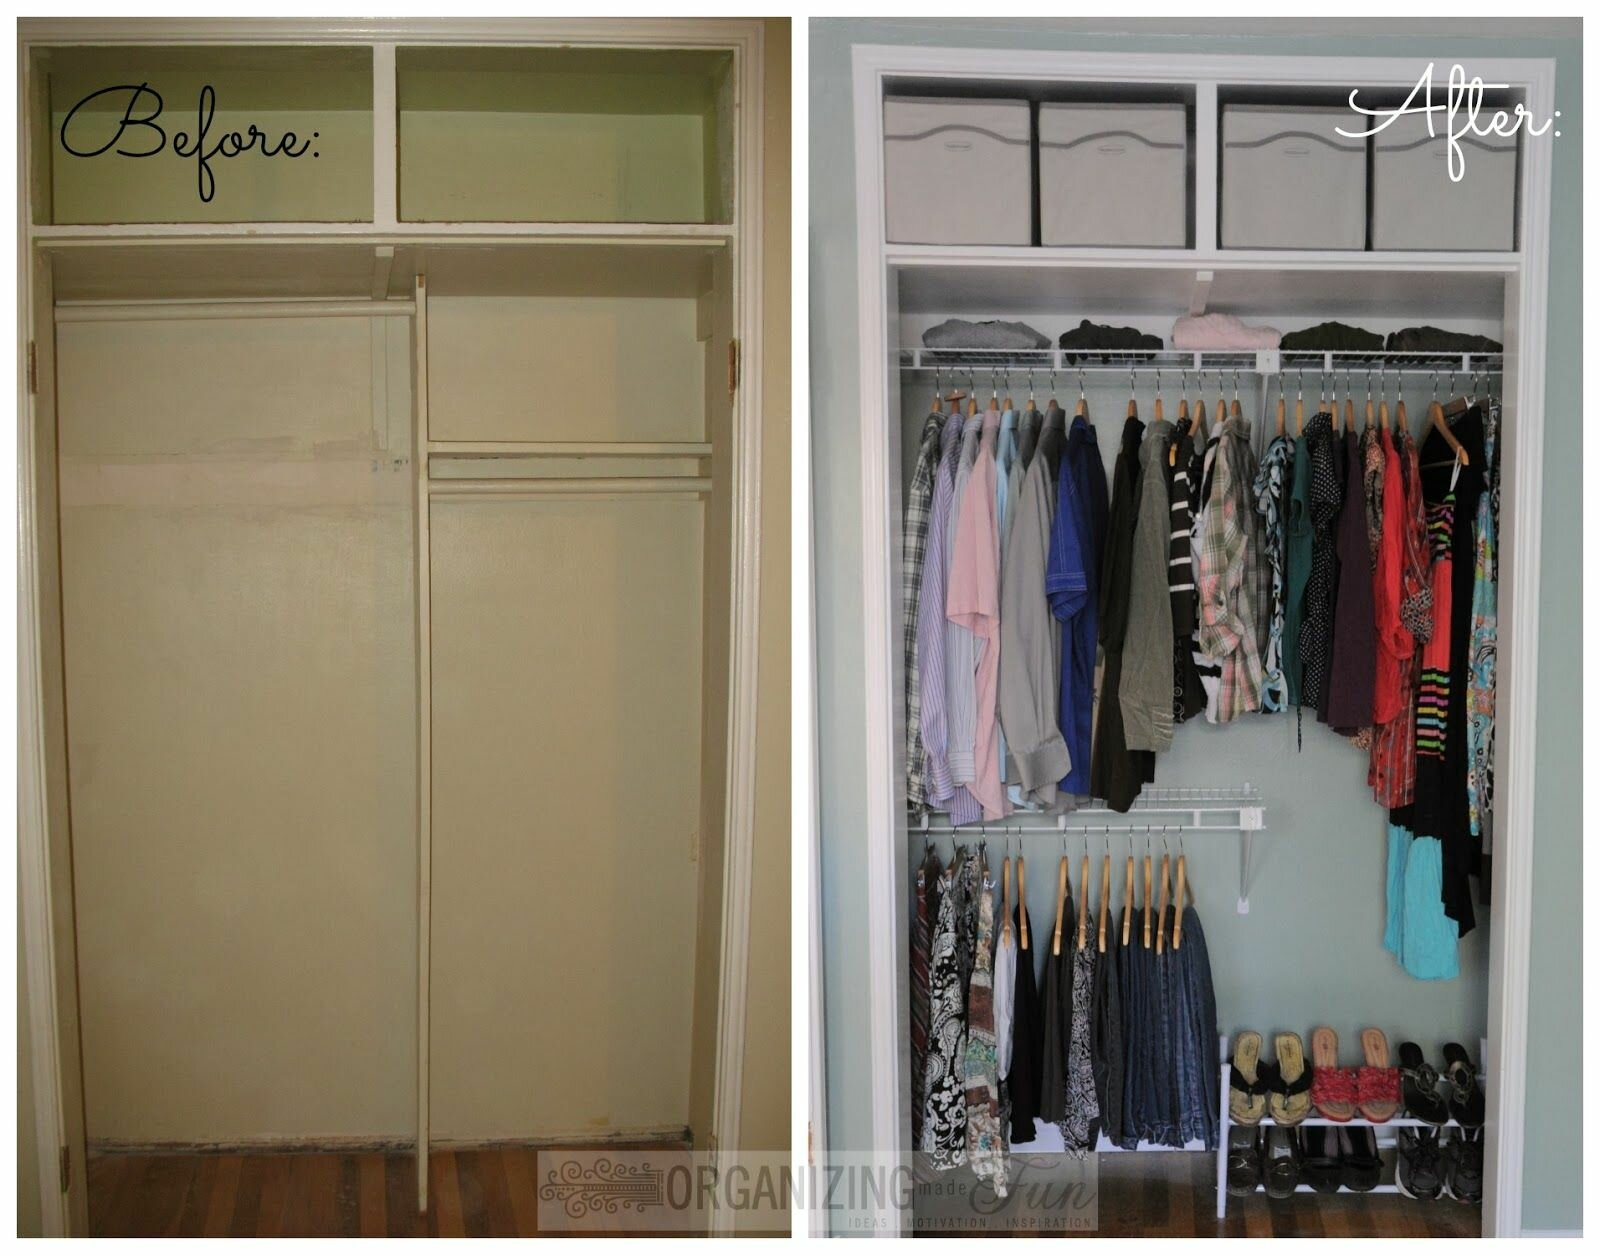 California Closets Discounts | Easyclosets | Easy Closets Costco